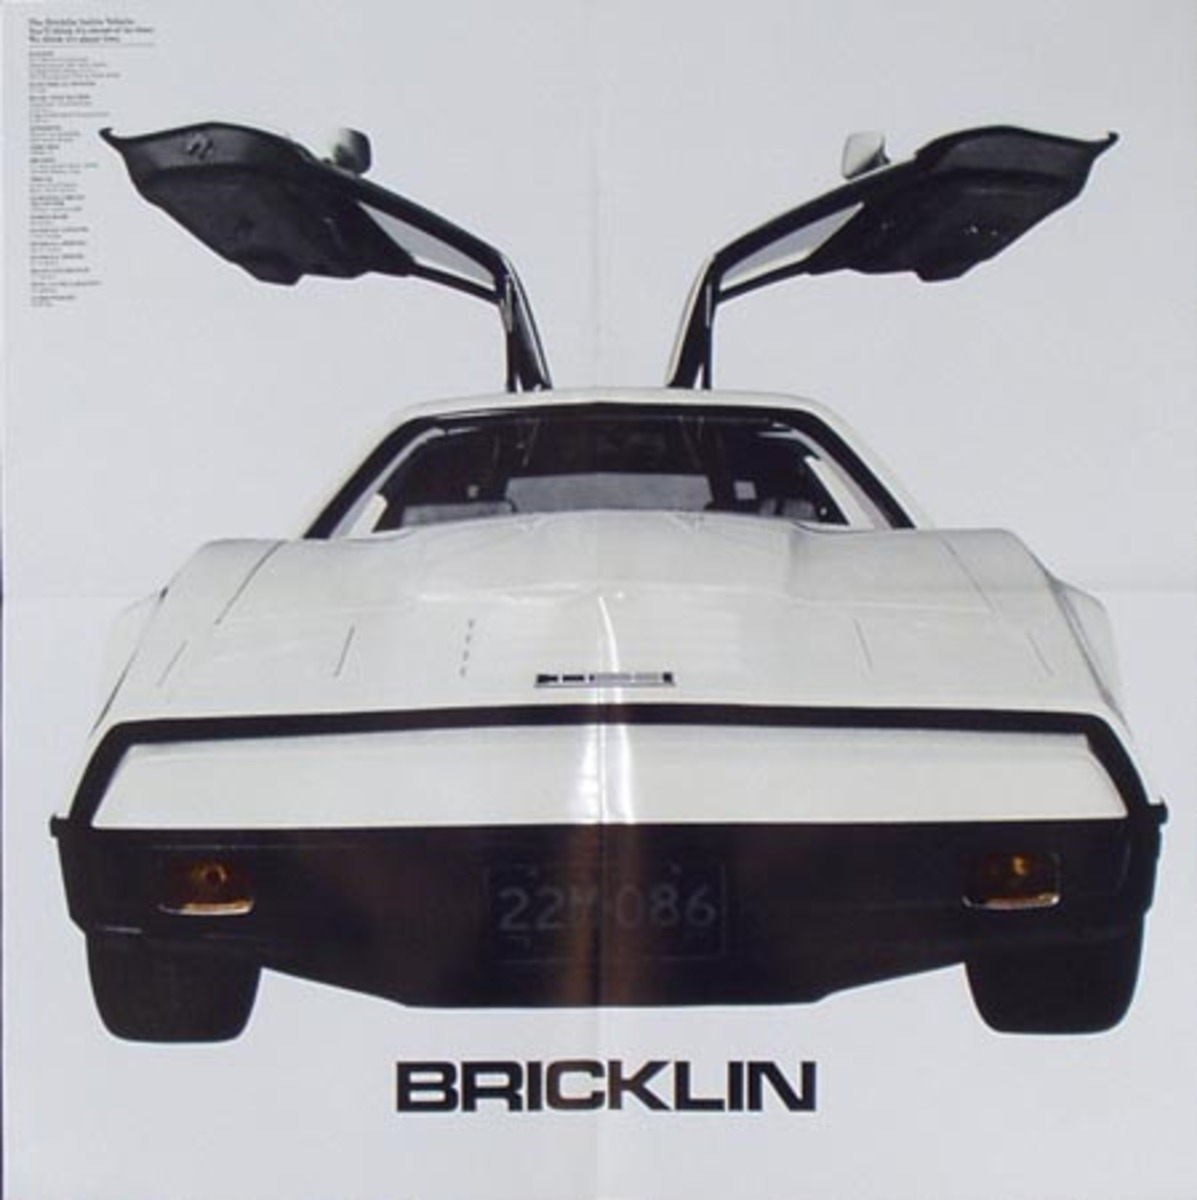 Bricklin Auto Original Advertising Poster